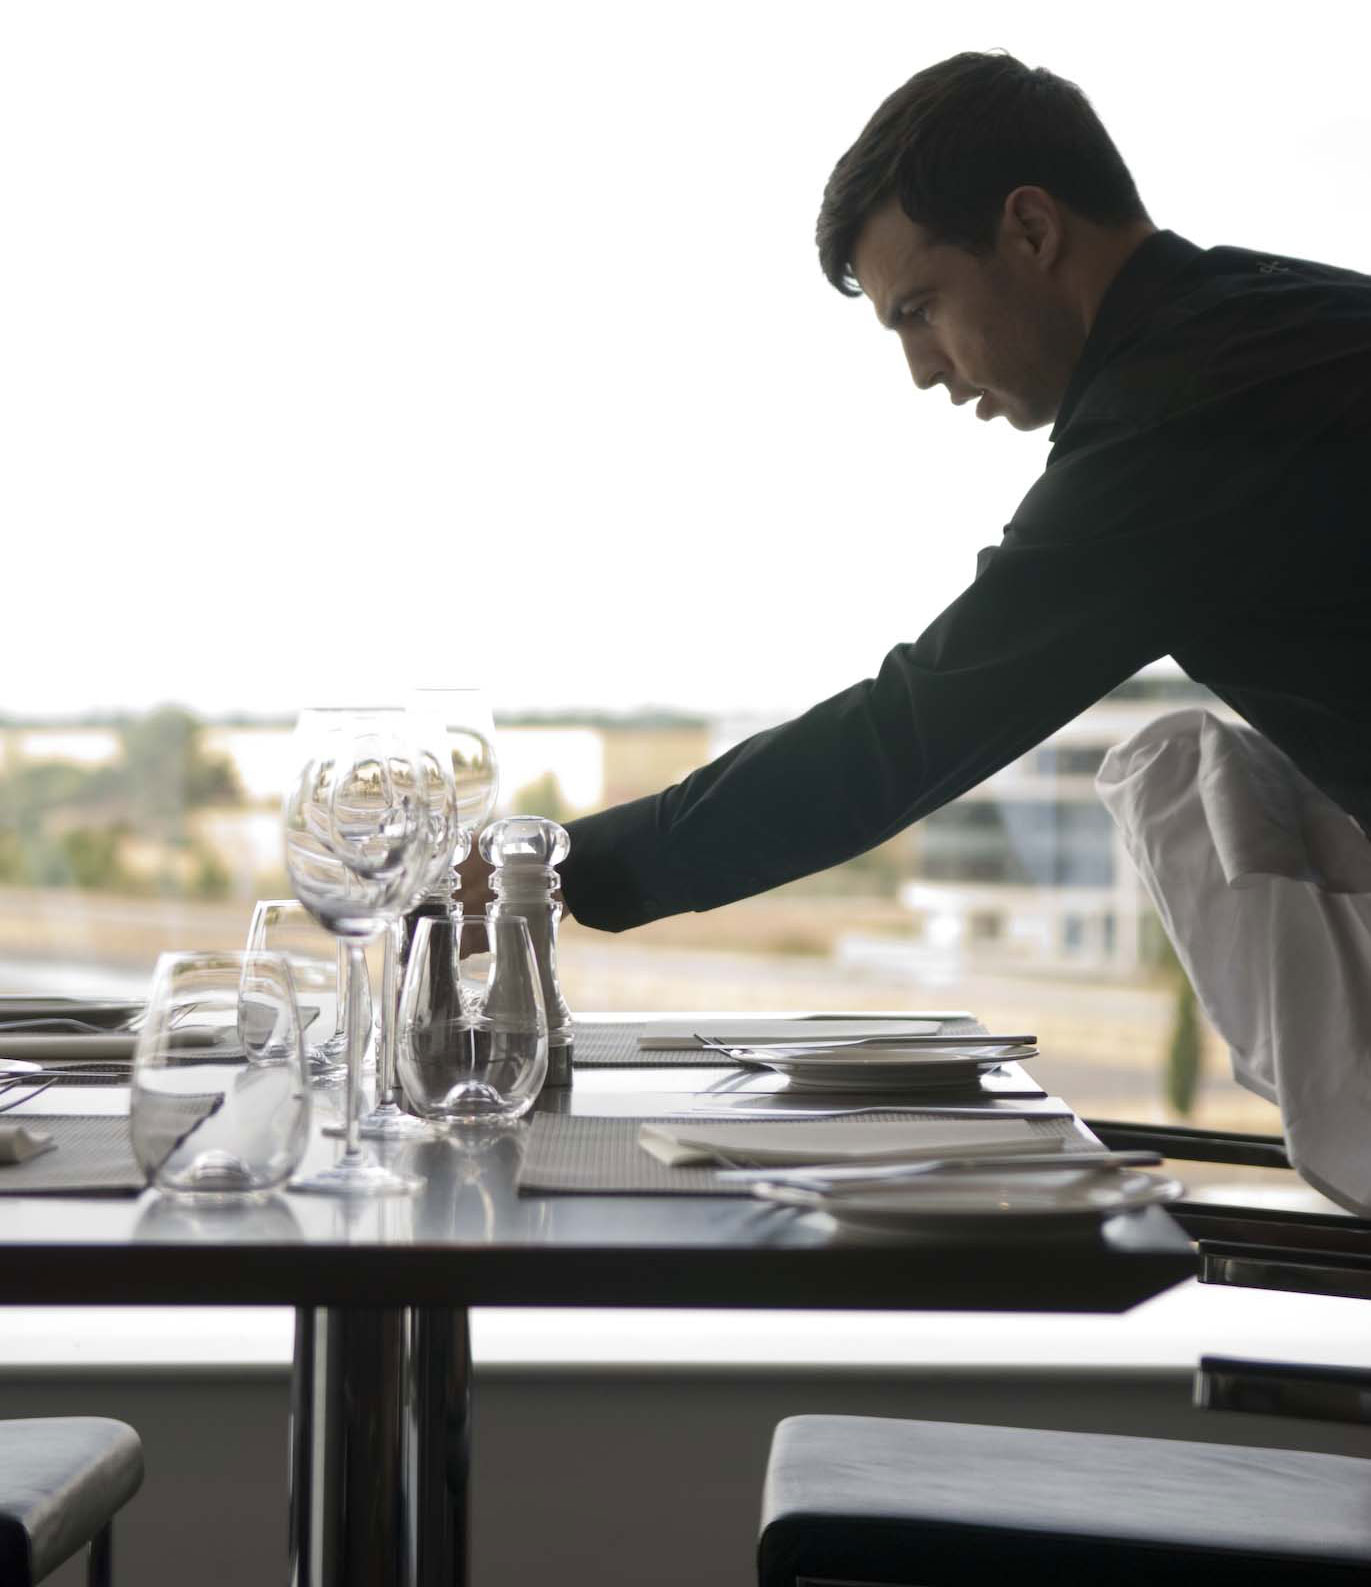 Image of The Bistro at Mercedes - Benz World